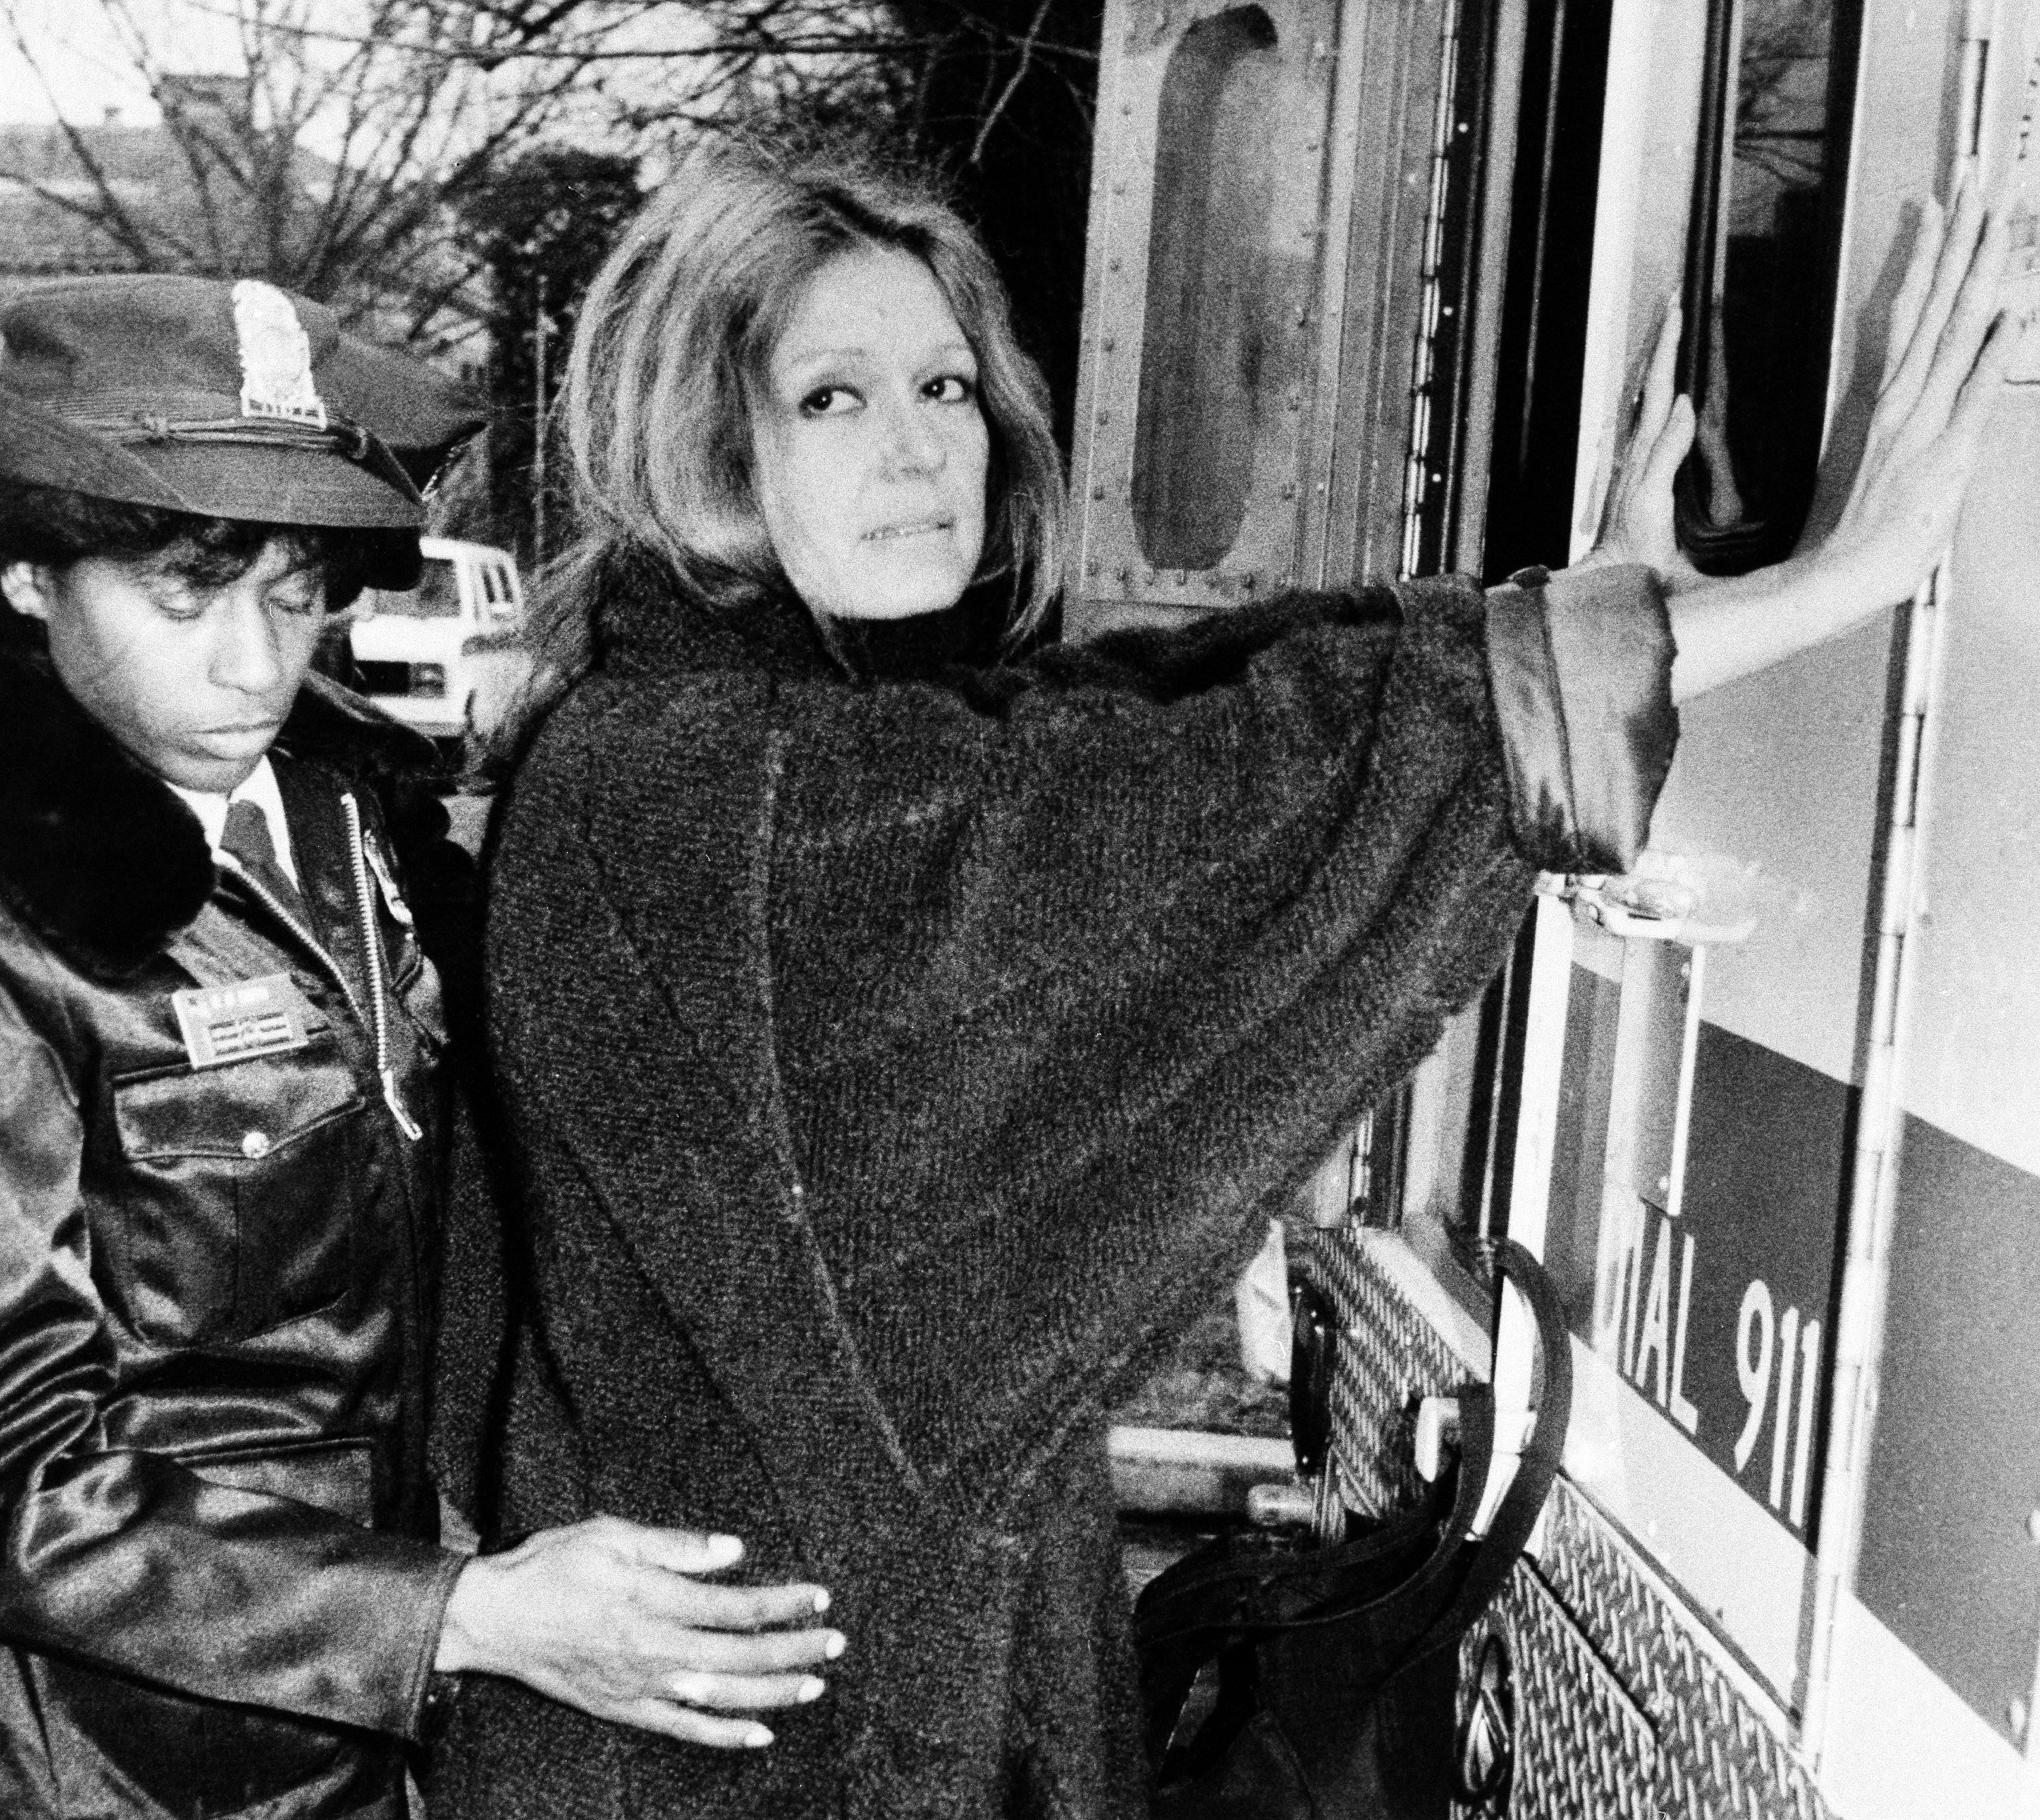 A uniformed officer arrests feminist Gloria Steinem during an anti-apartheid protest outside the South African Embassy in Washington, Dec. 19, 1984.